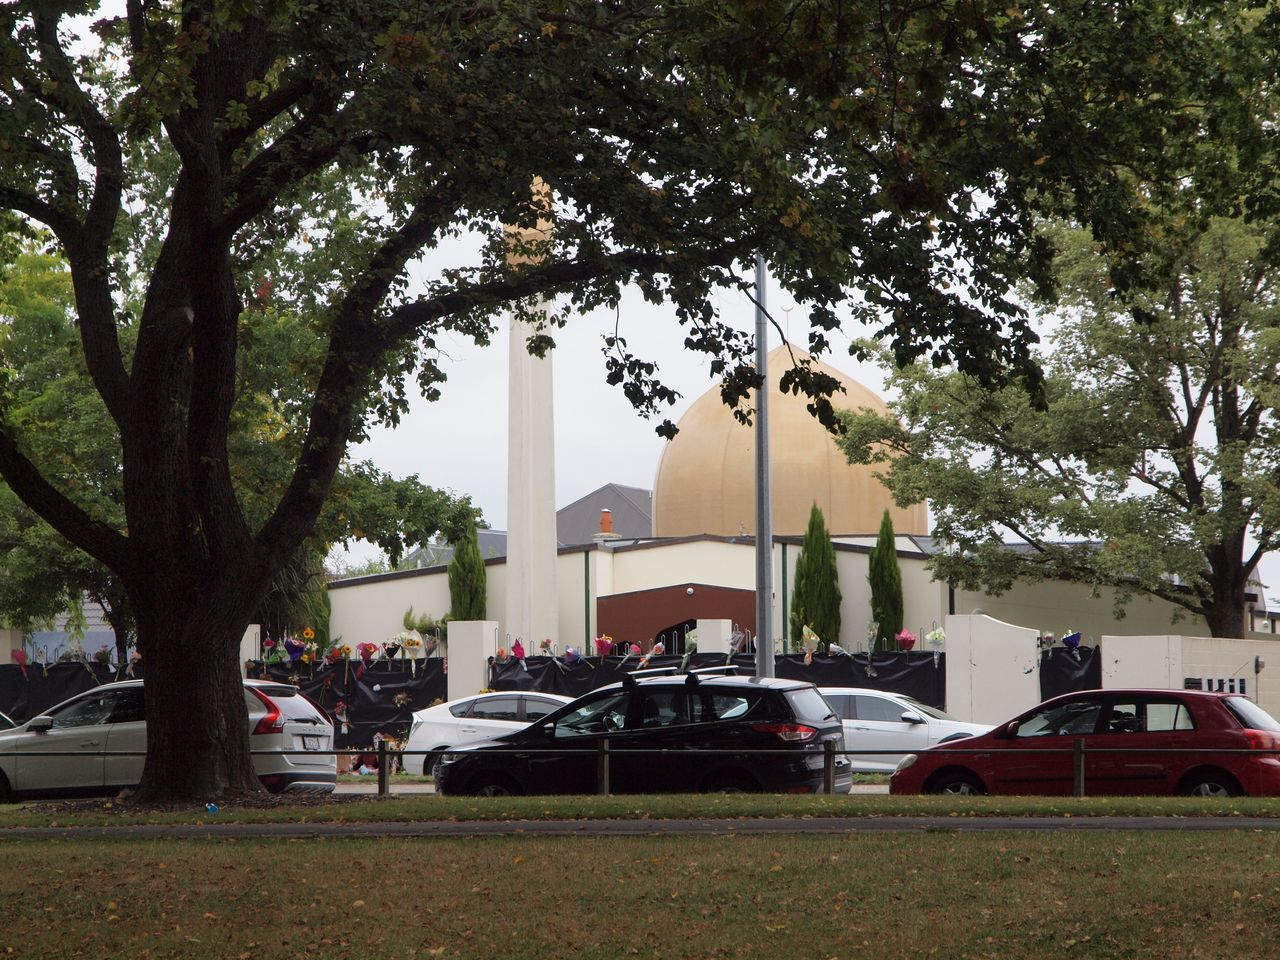 New Zealand: Two years since the Christchurch far-right terrorist attack